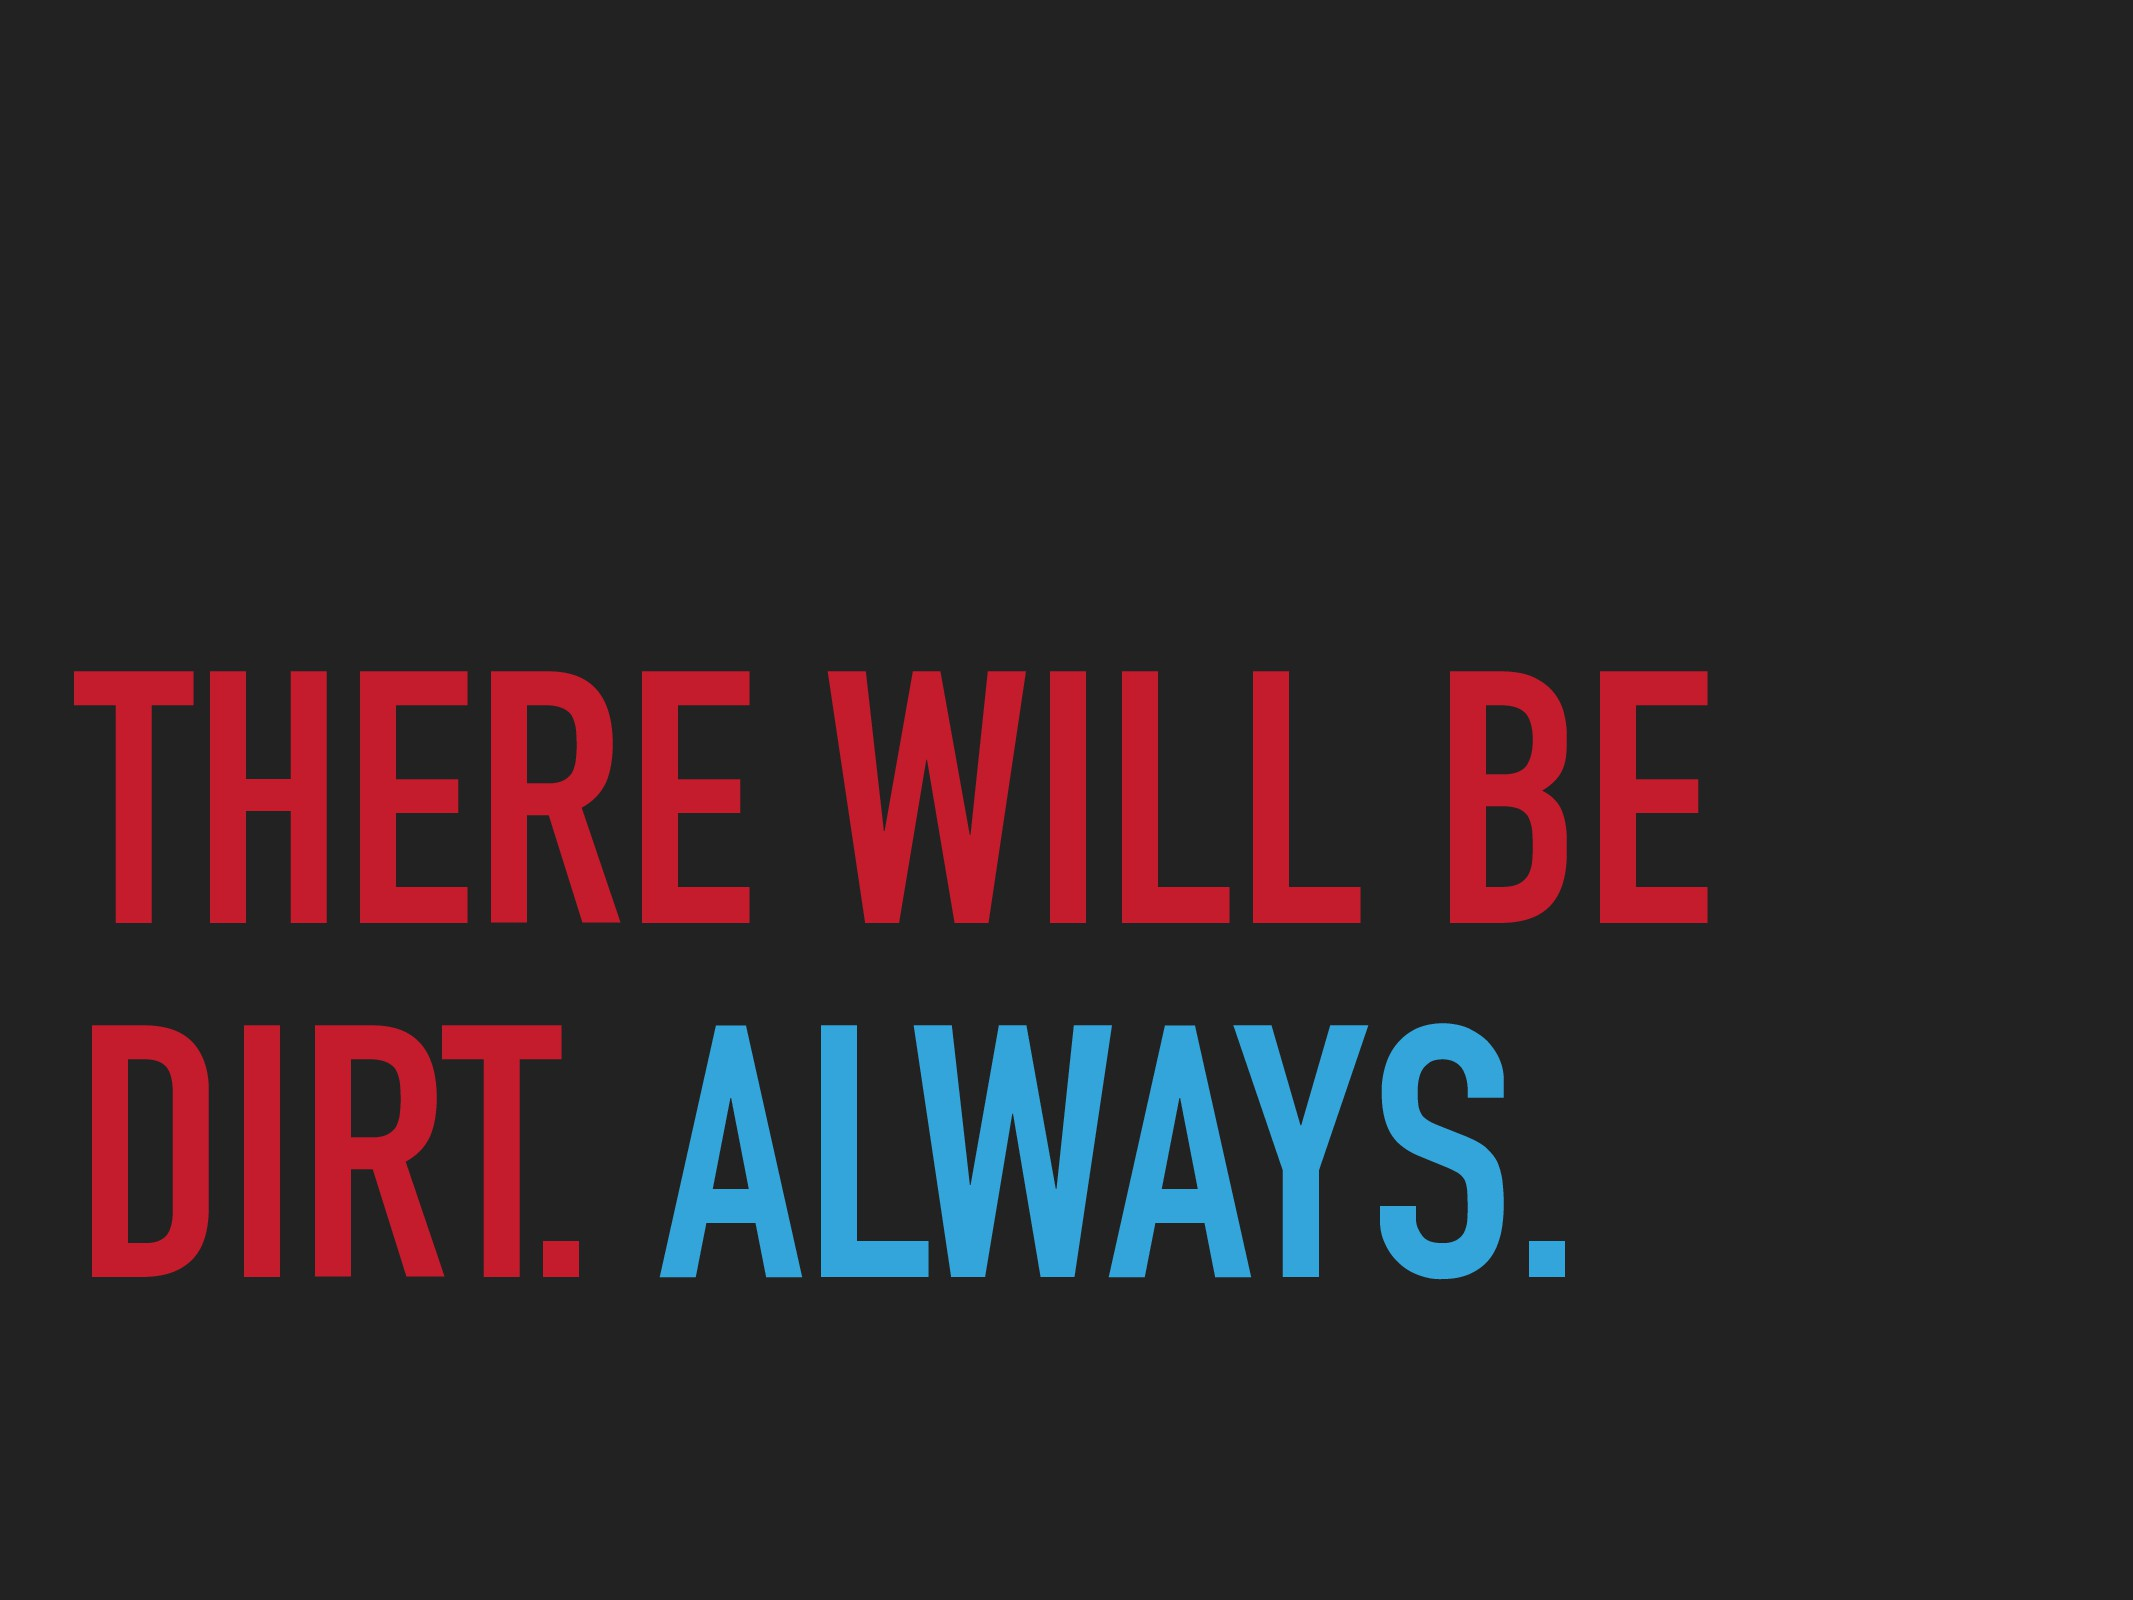 THERE WILL BE DIRT. ALWAYS.